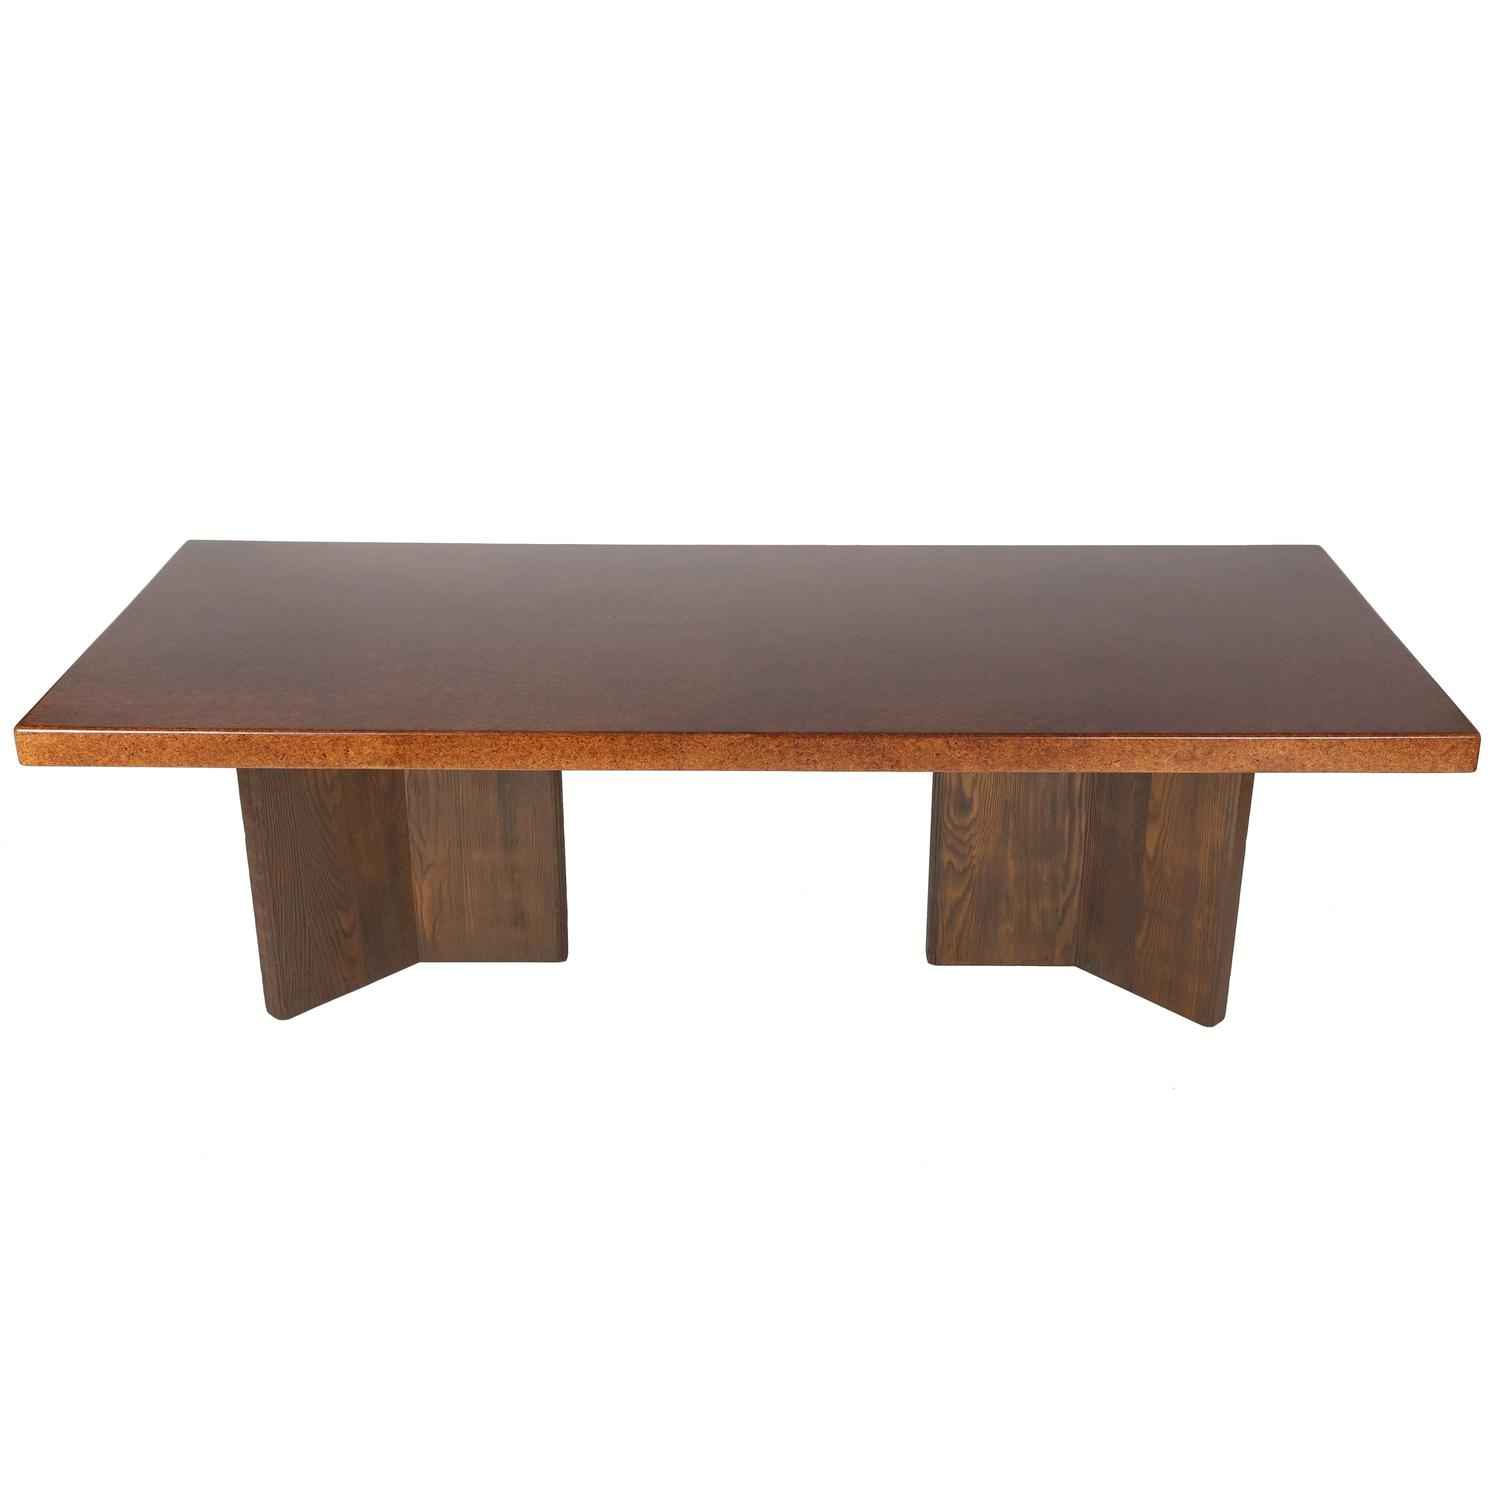 dining room furniture cork | Large Cork-Top Dining Table by Paul Frankl For Sale at 1stdibs